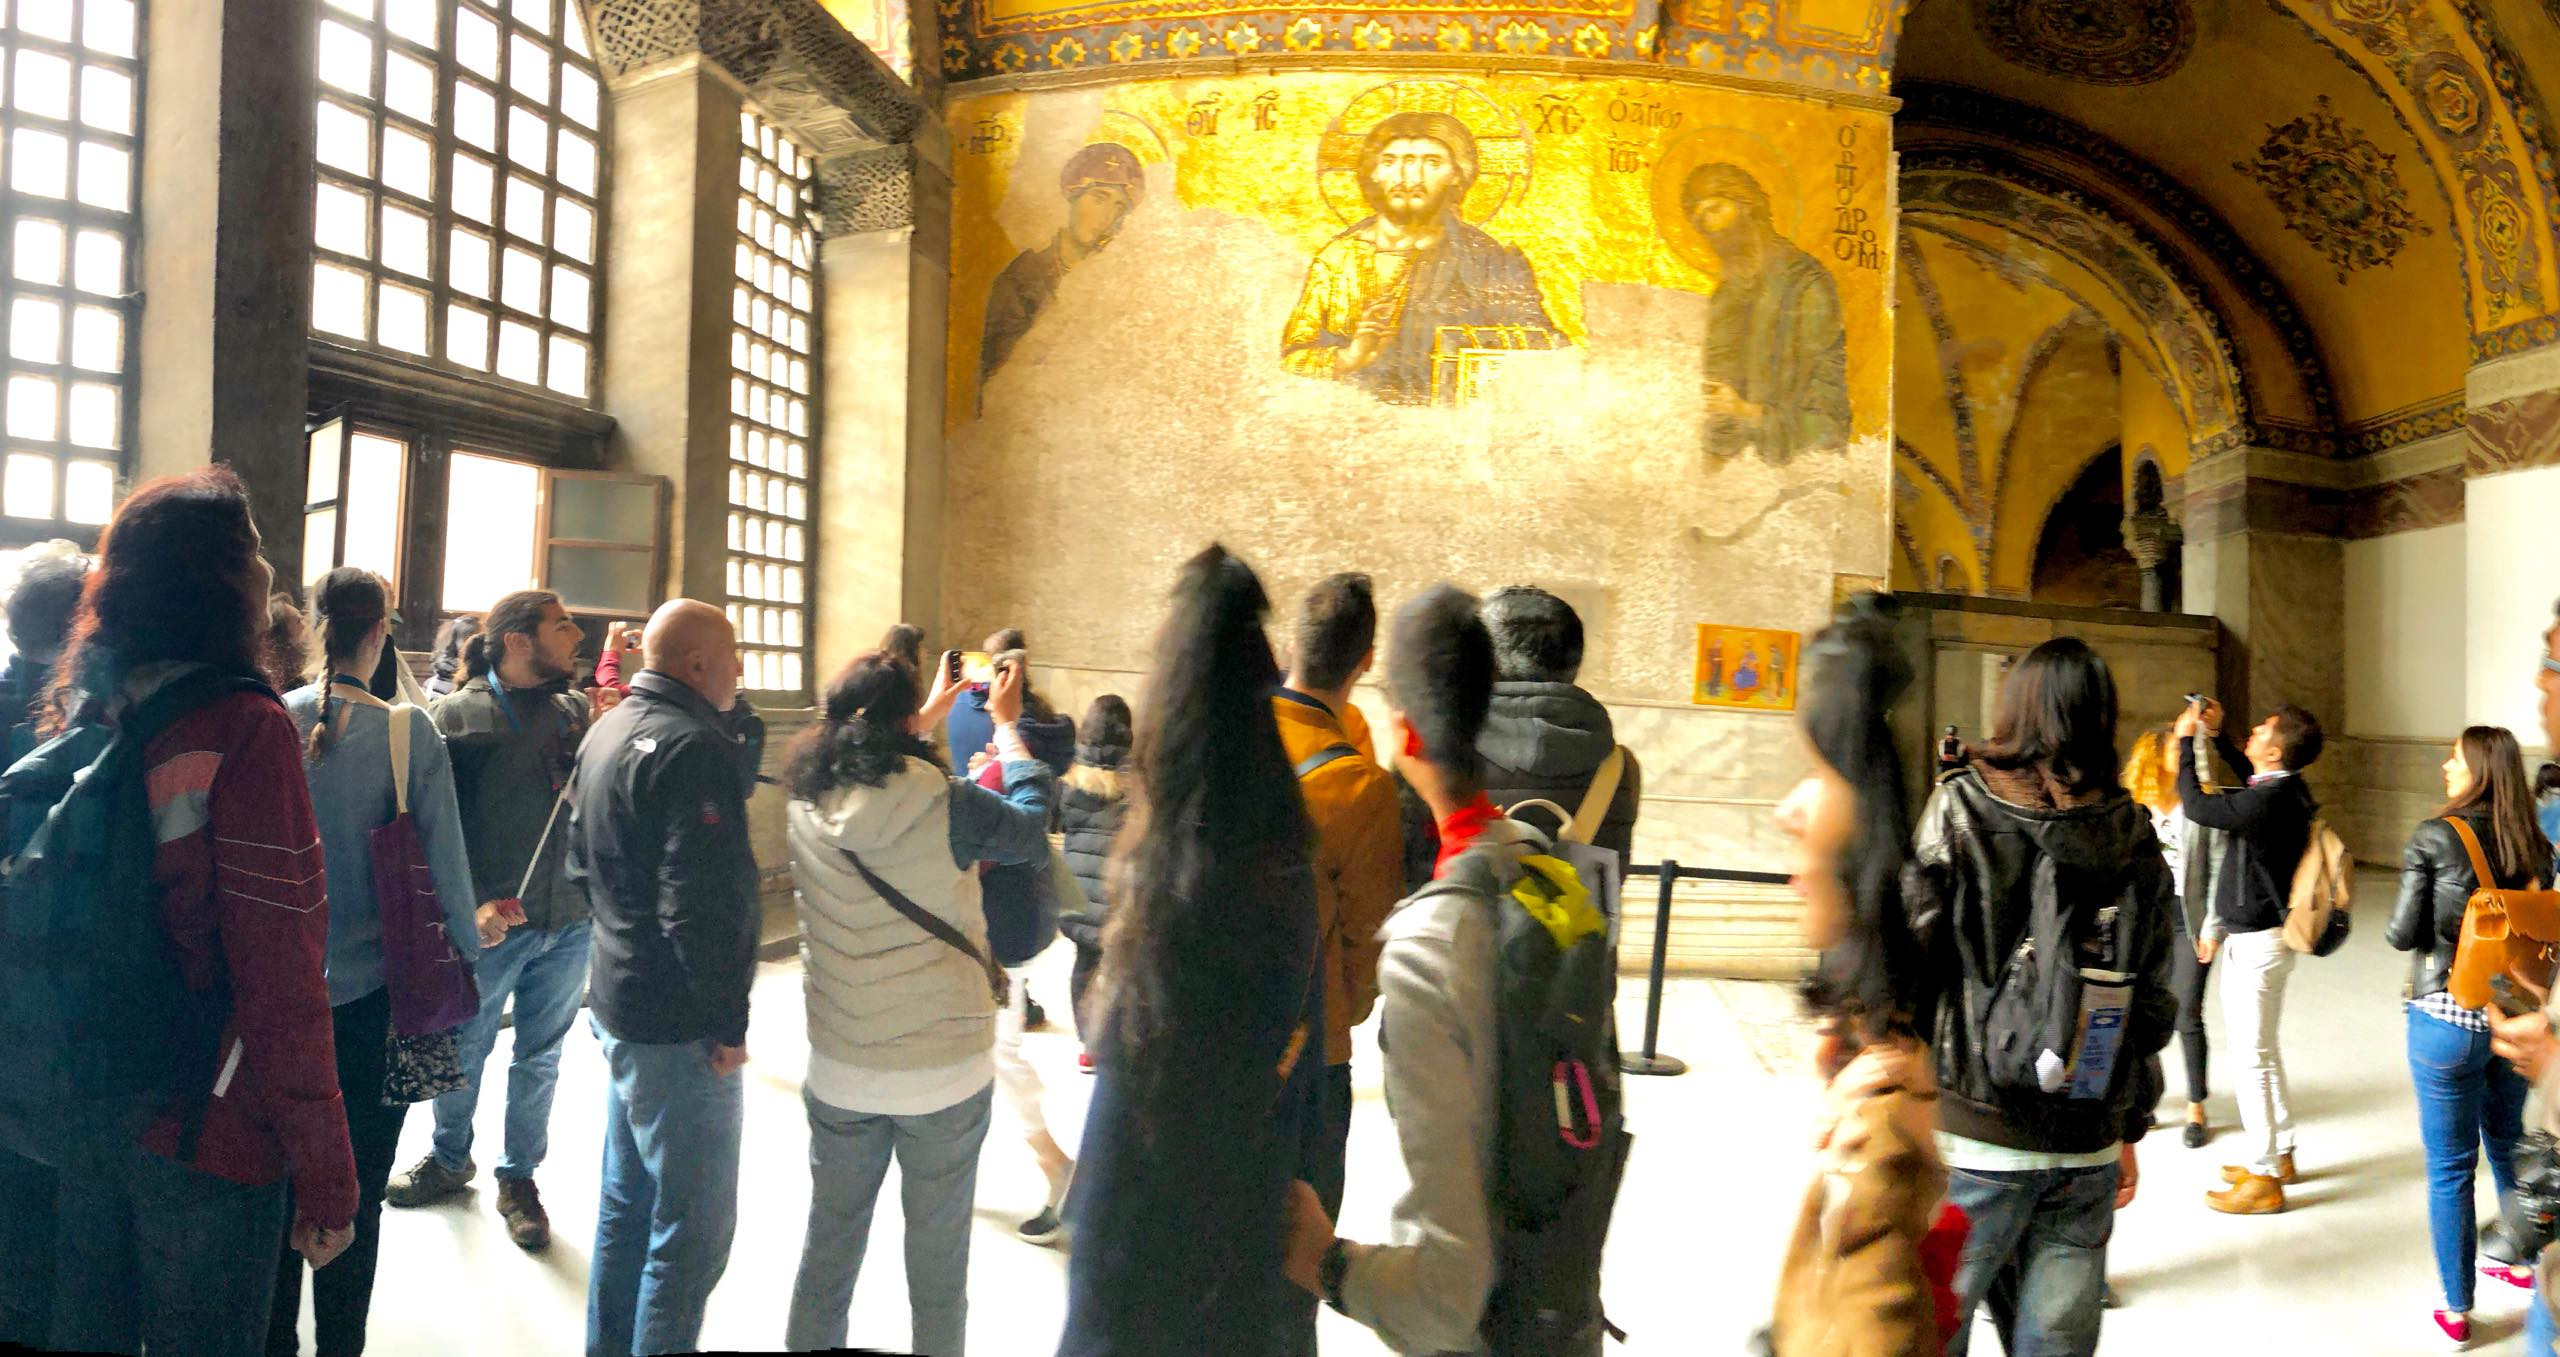 Panoramic View of Gallery & Mosaics